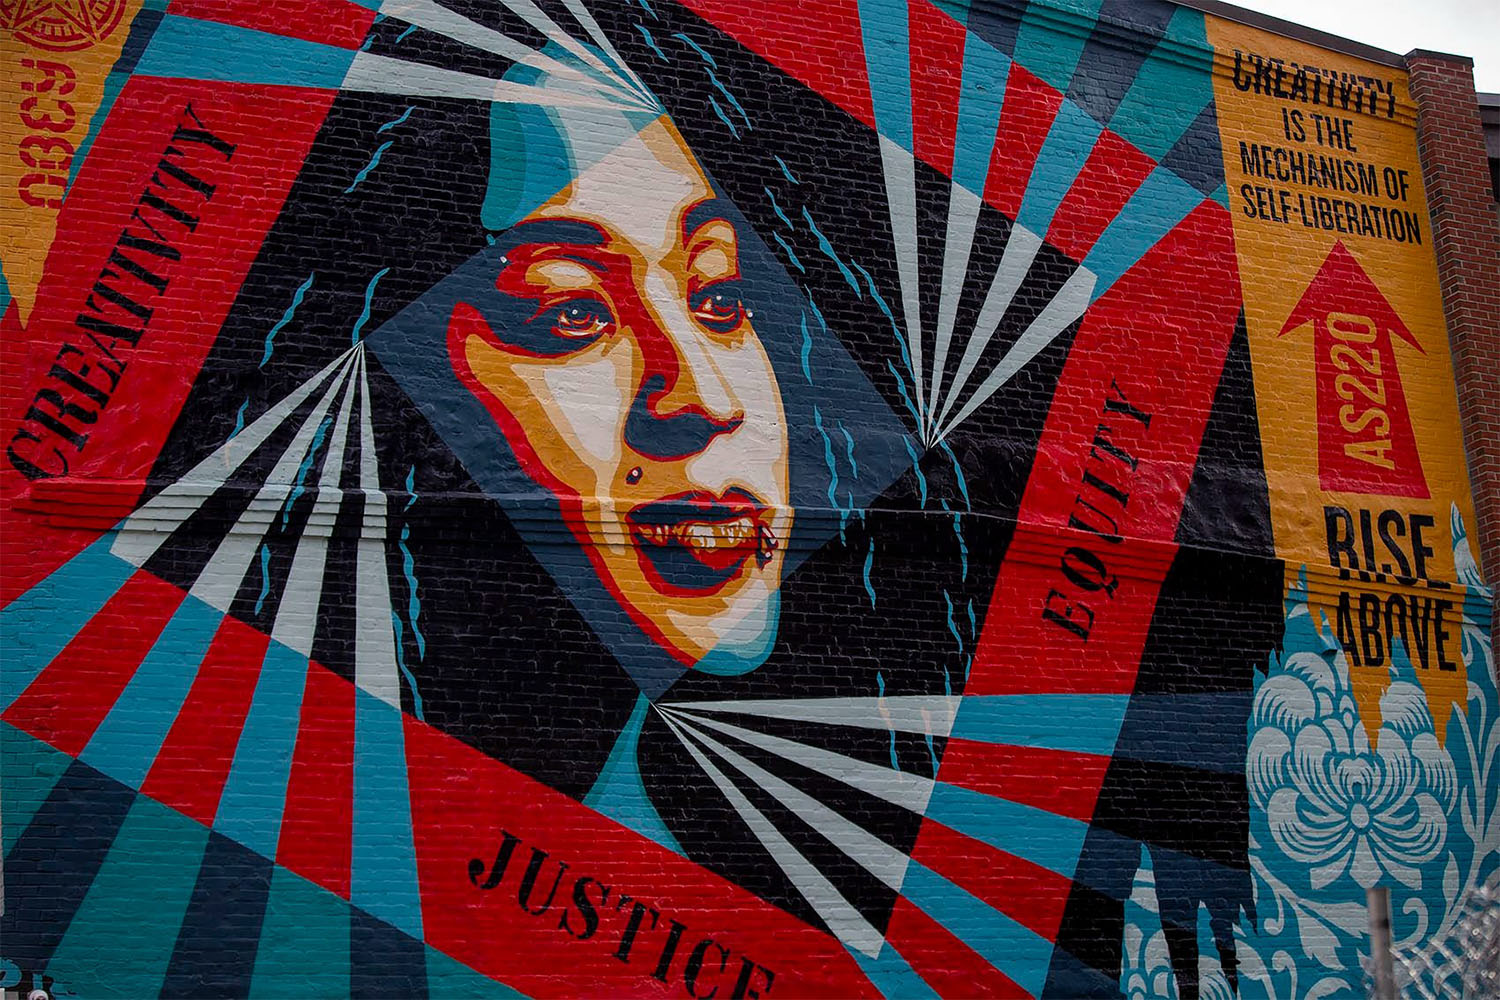 """Shepard Fairey's """"Creativity, Equity, Justice"""" mural in Providence, Rhode Island"""